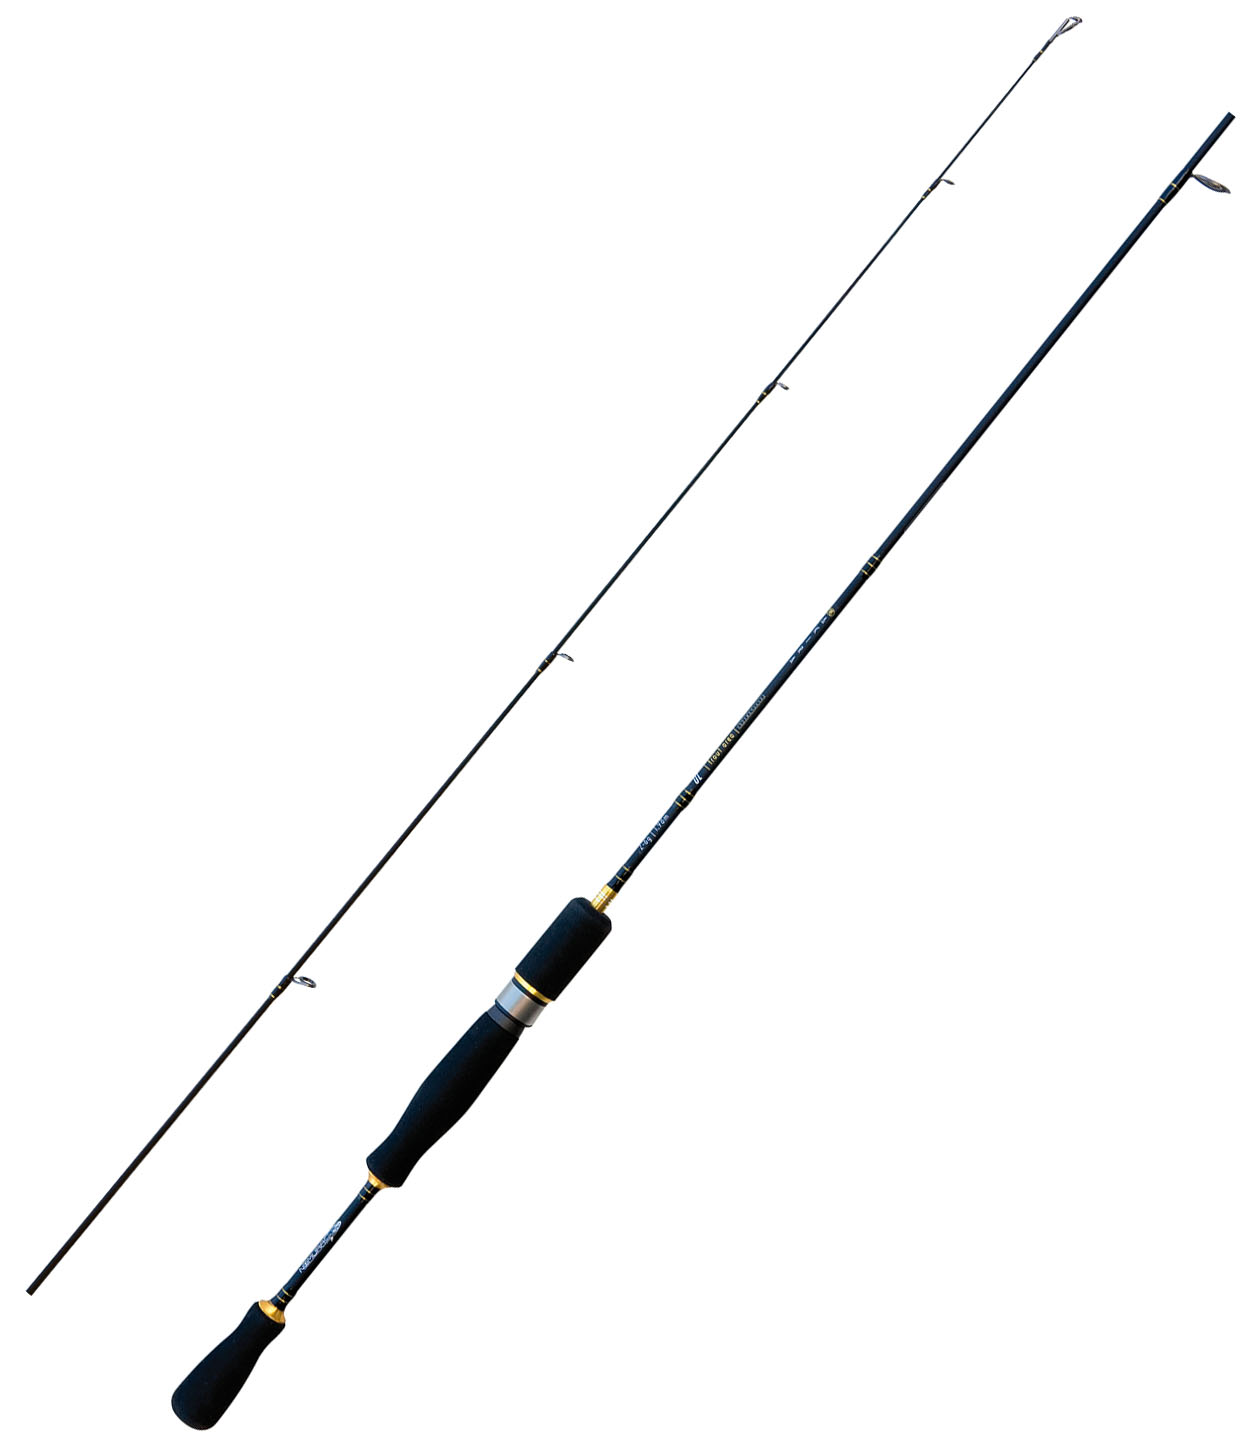 Nomura Akira Trout Area Spinning Rods Glasgow Angling Centre Spinner Iron Hiro 1